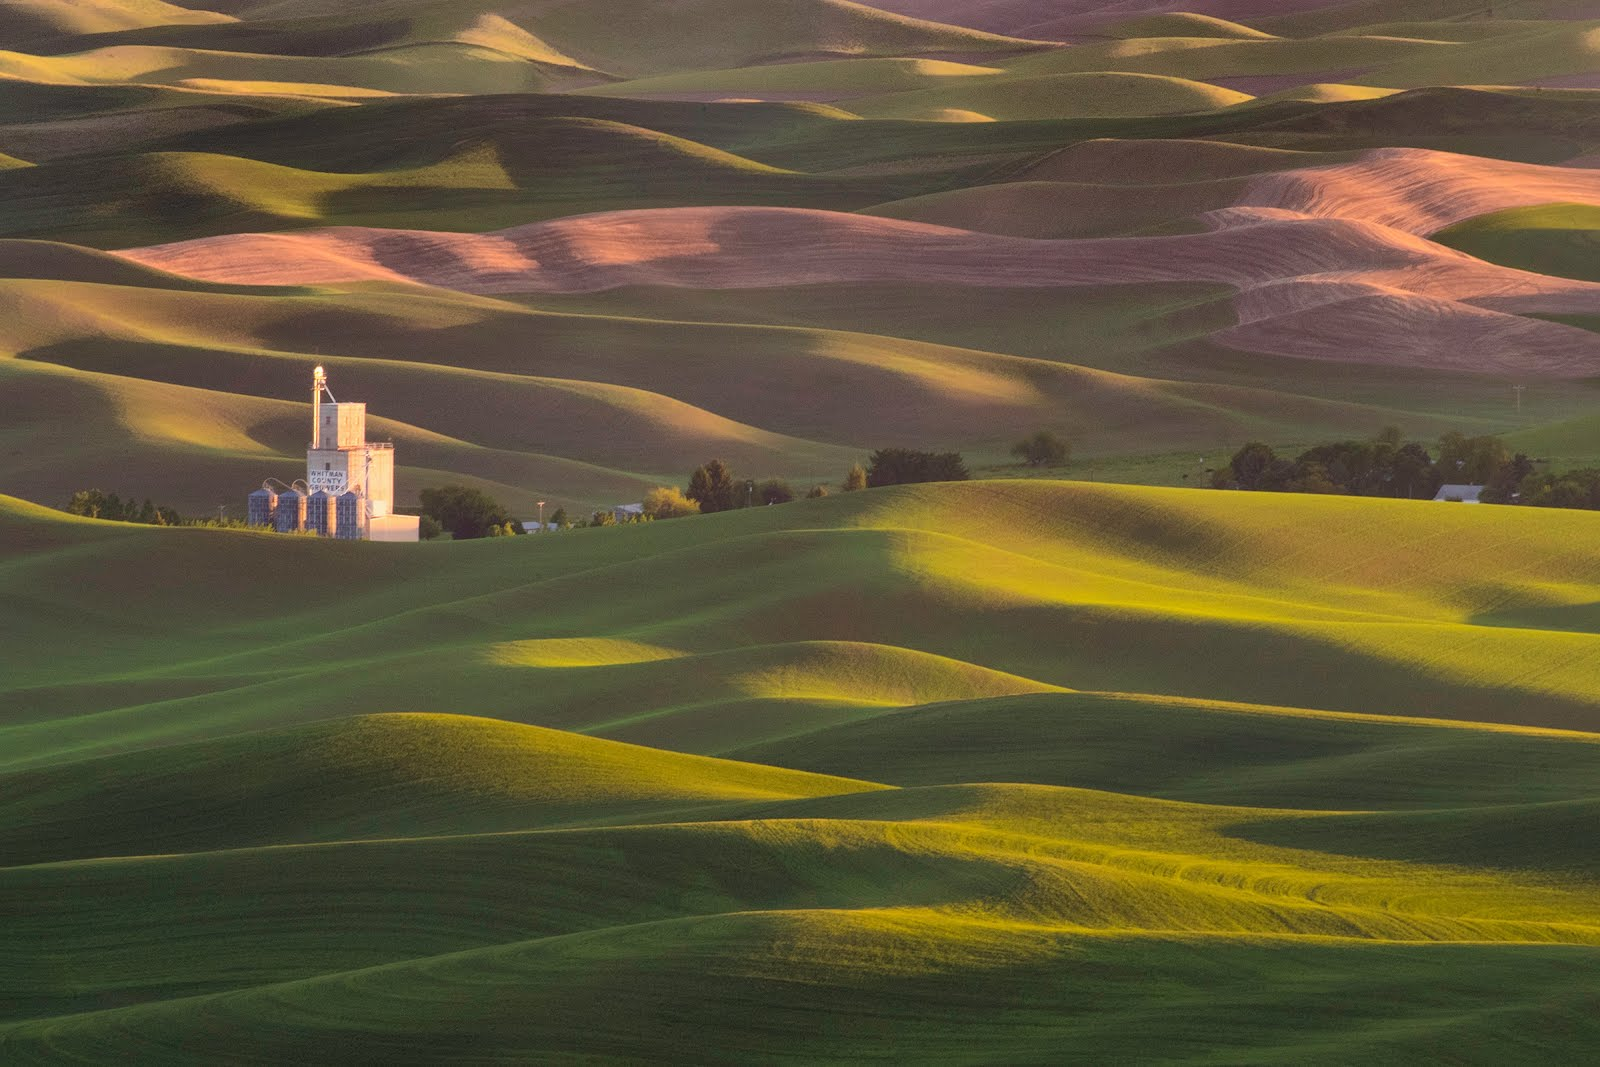 Palouse May 18-23 / John Barclay & Rad Drew